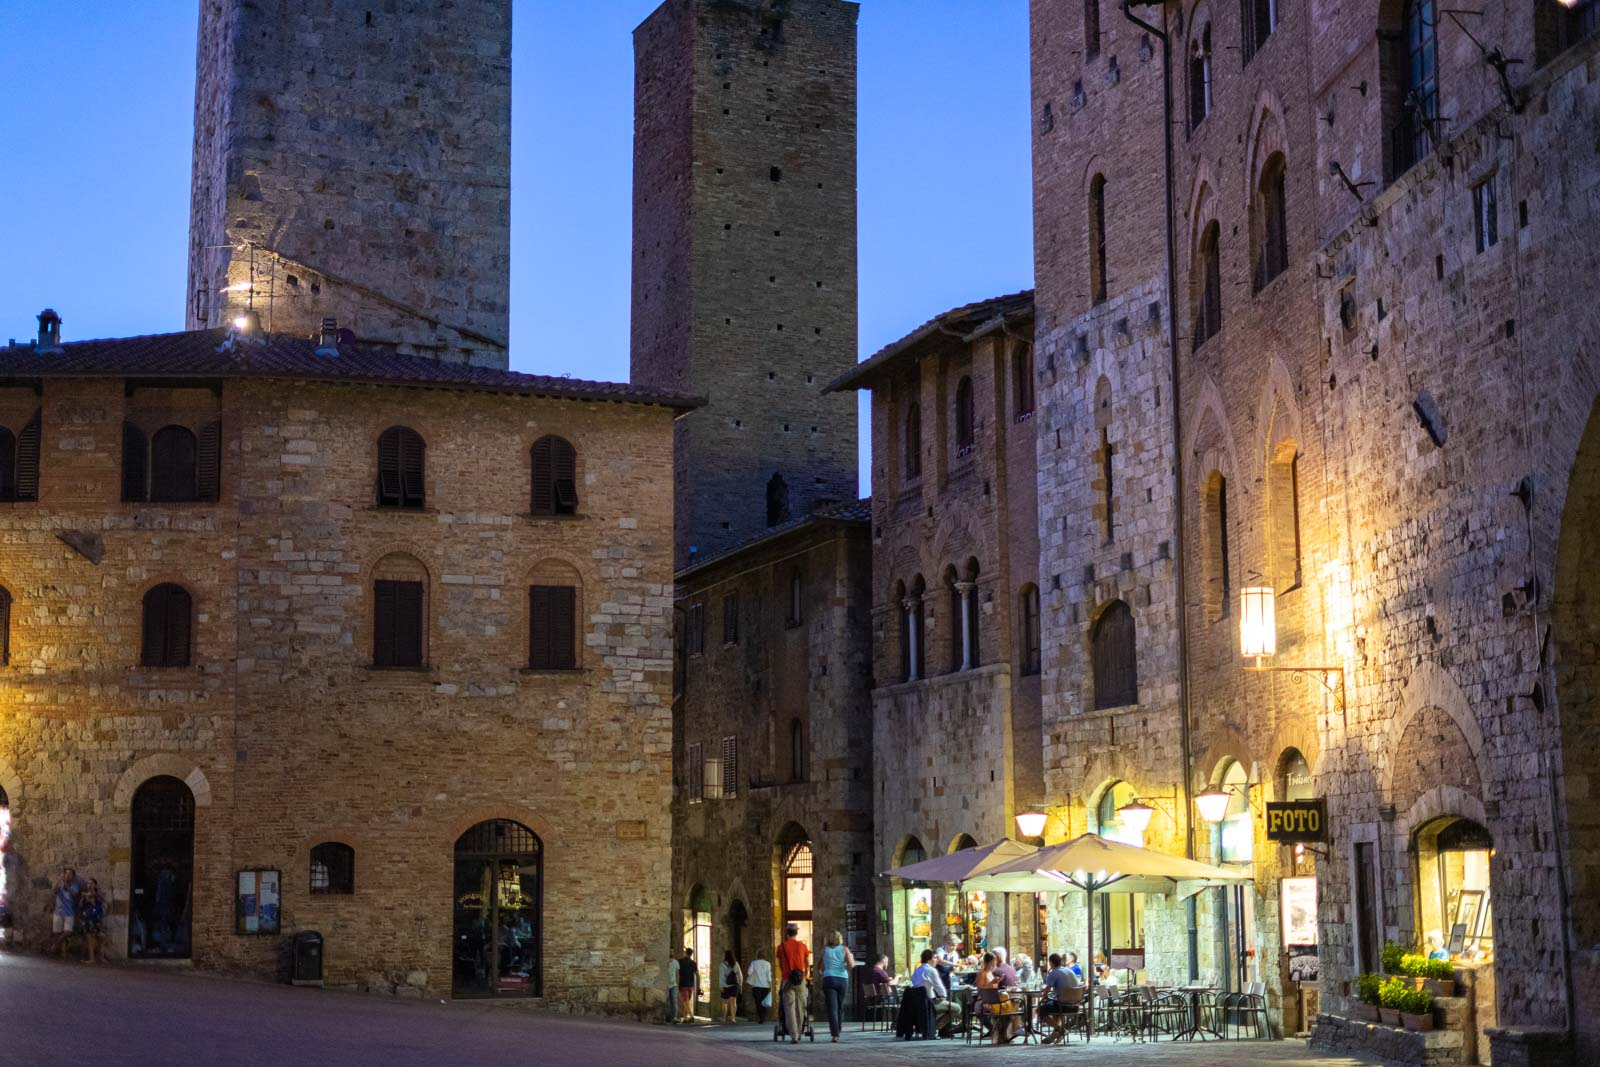 San Gimignano in the evening